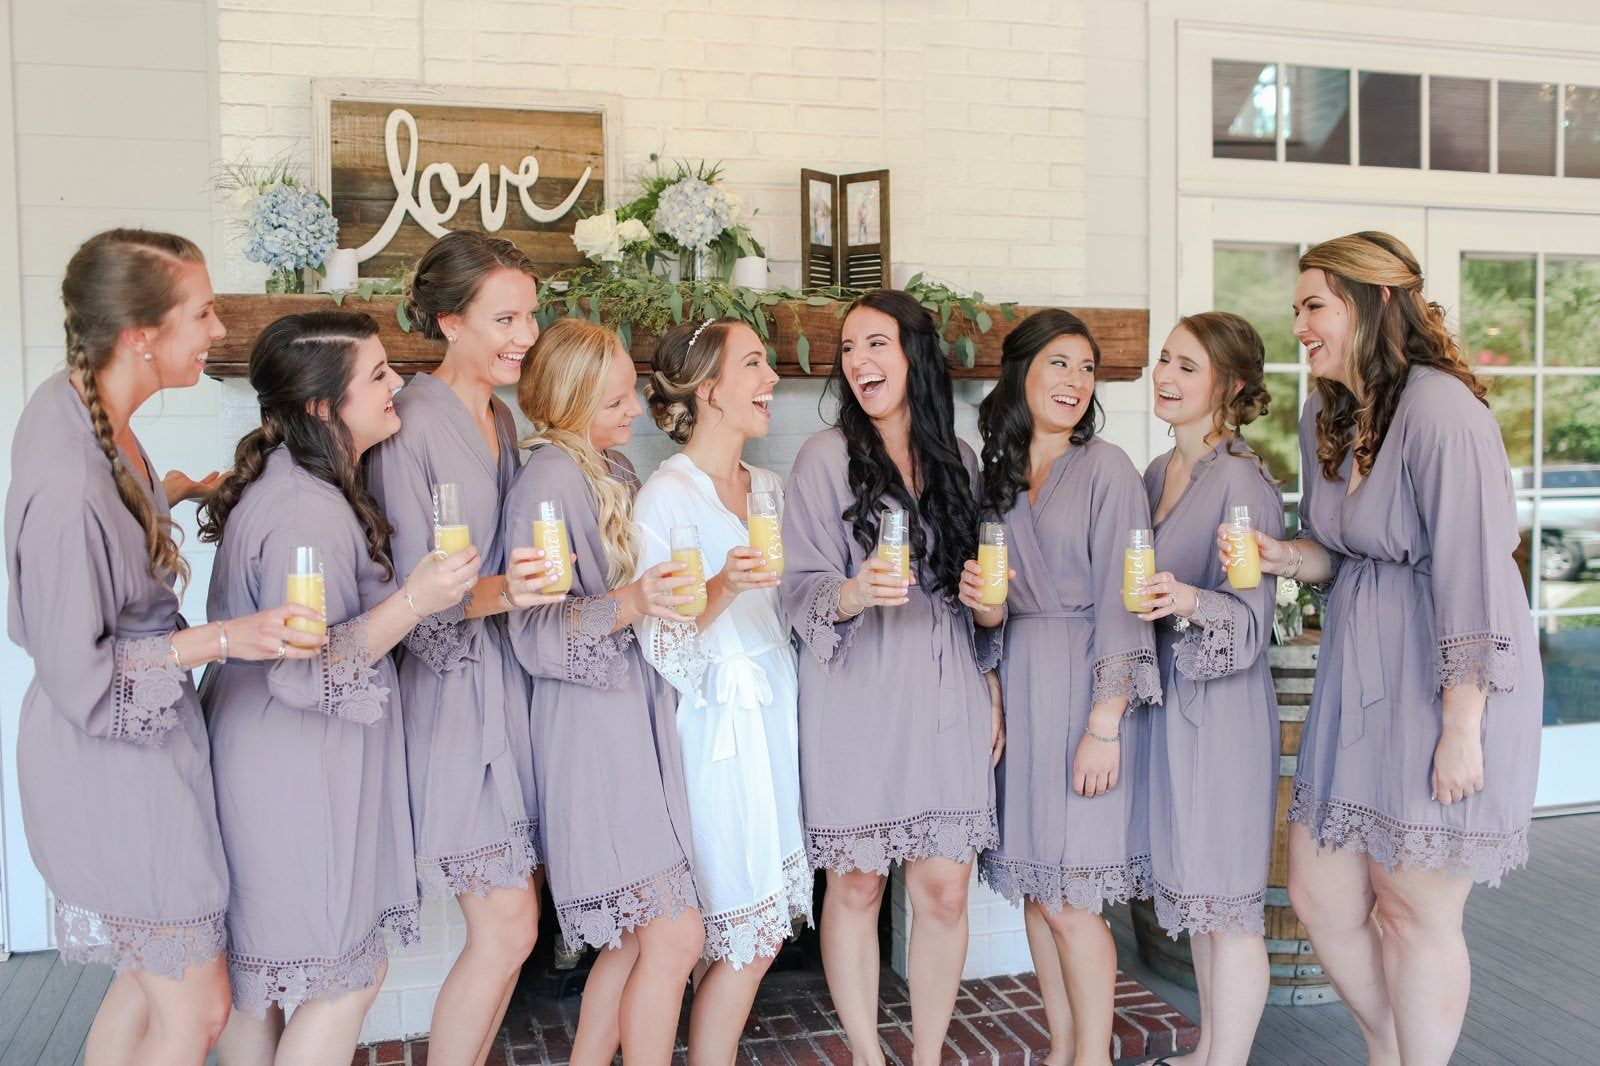 Lace Robes Bridesmaid - Bridal Party - Solid Cotton - Custom Monogrammed Personalized Embroidered Gift - Getting Ready Wedding Day